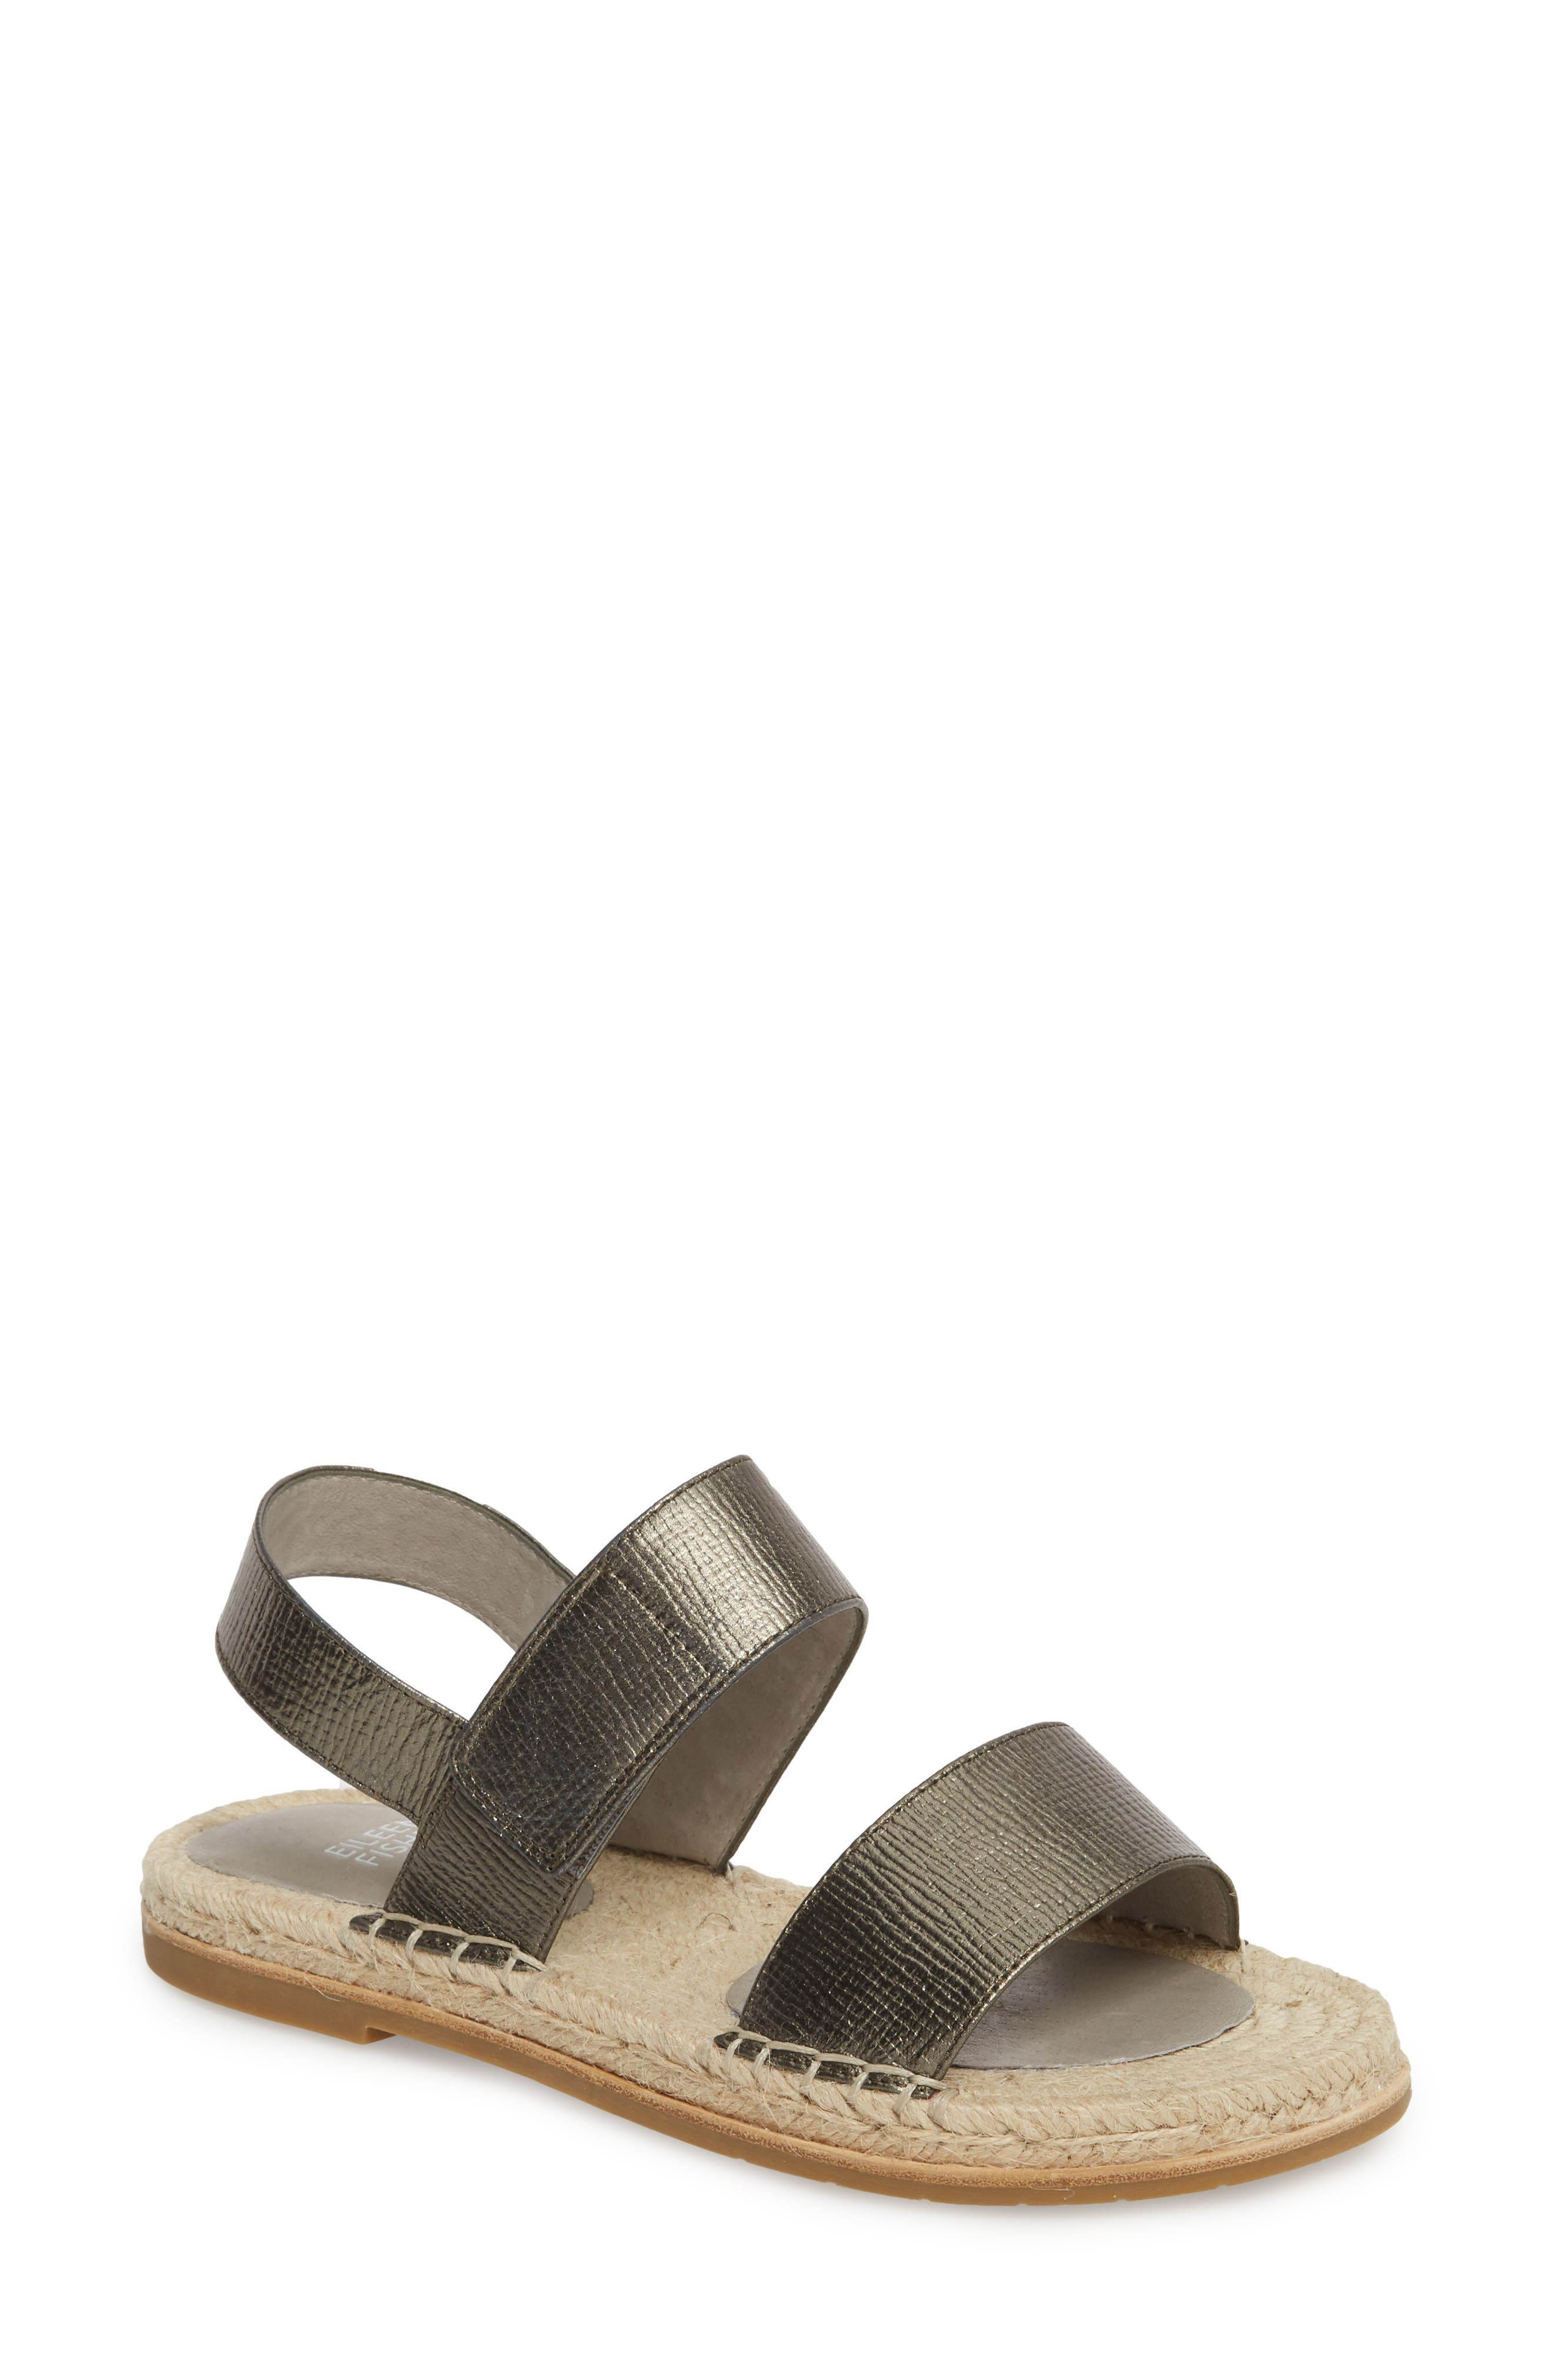 b969855adc1 EILEEN FISHER MAX SANDAL